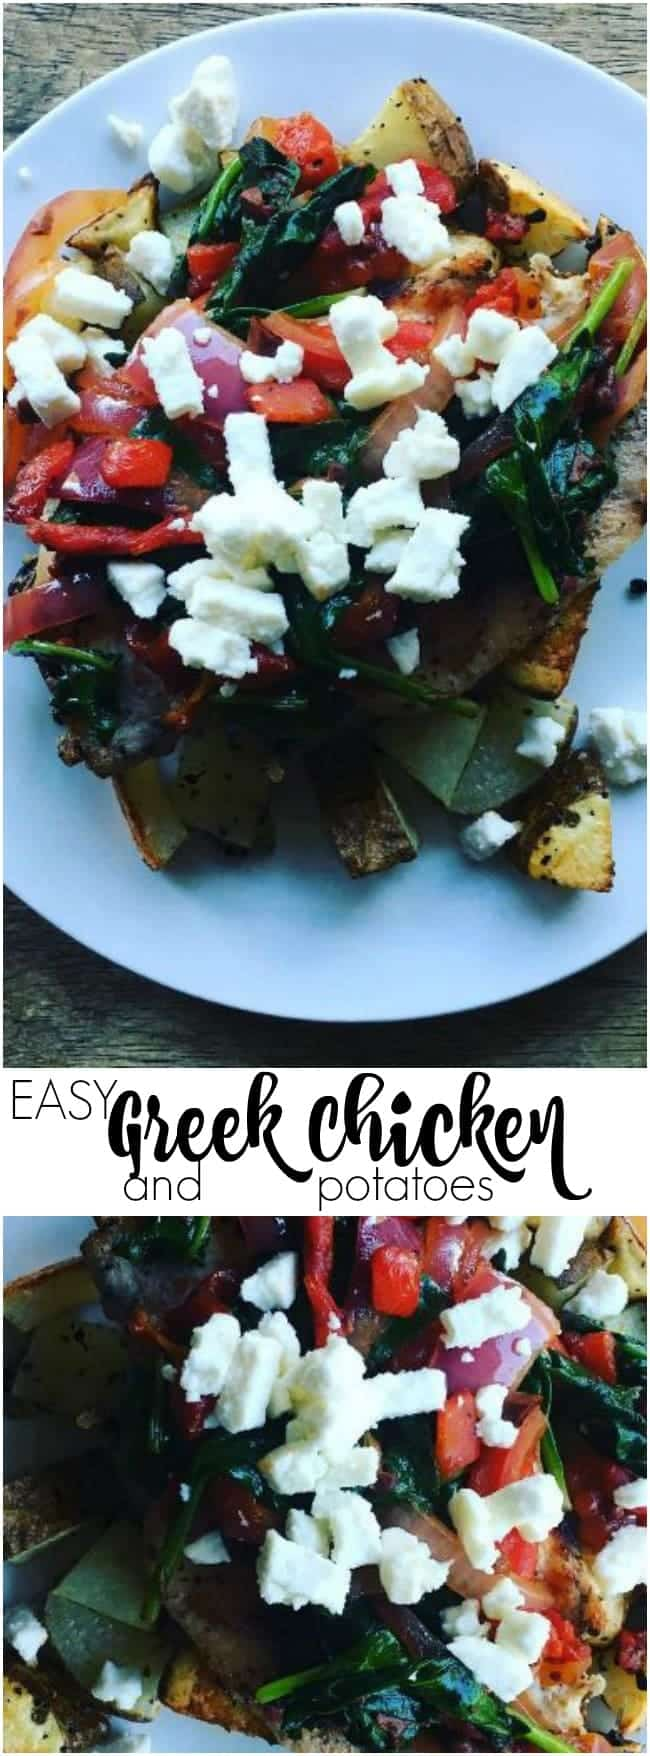 This Easy Greek Chicken and Potatoes Recipe is reeady in just 30 minutes! Simple, healthy, and loaded with flavor.